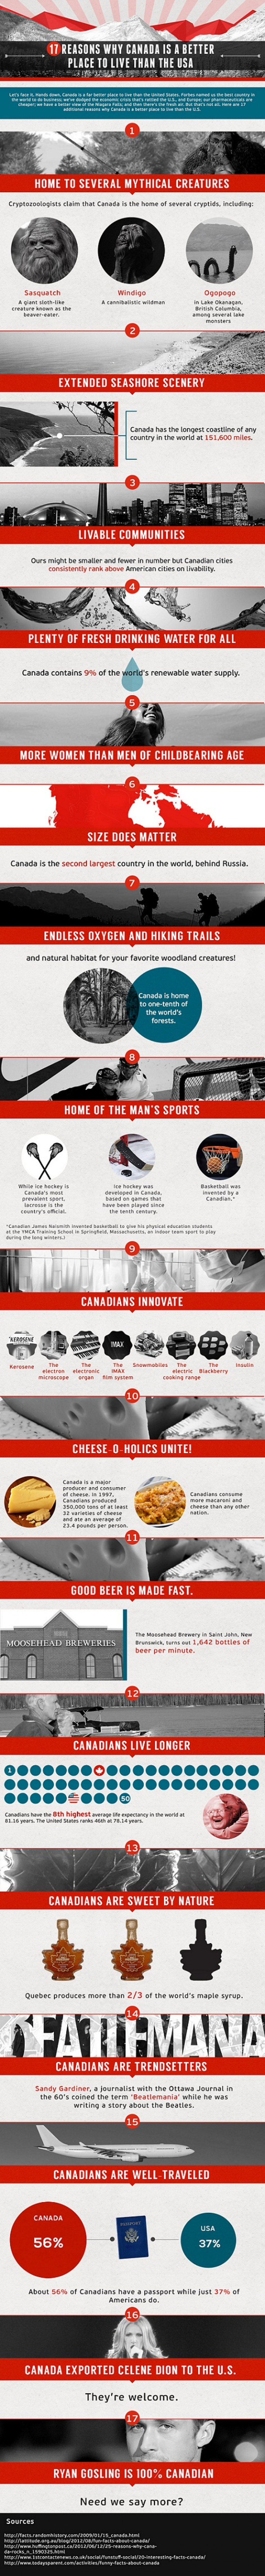 17 Reasons Why Canada is a Better Place to Live than the USA [Infographic] Infographic